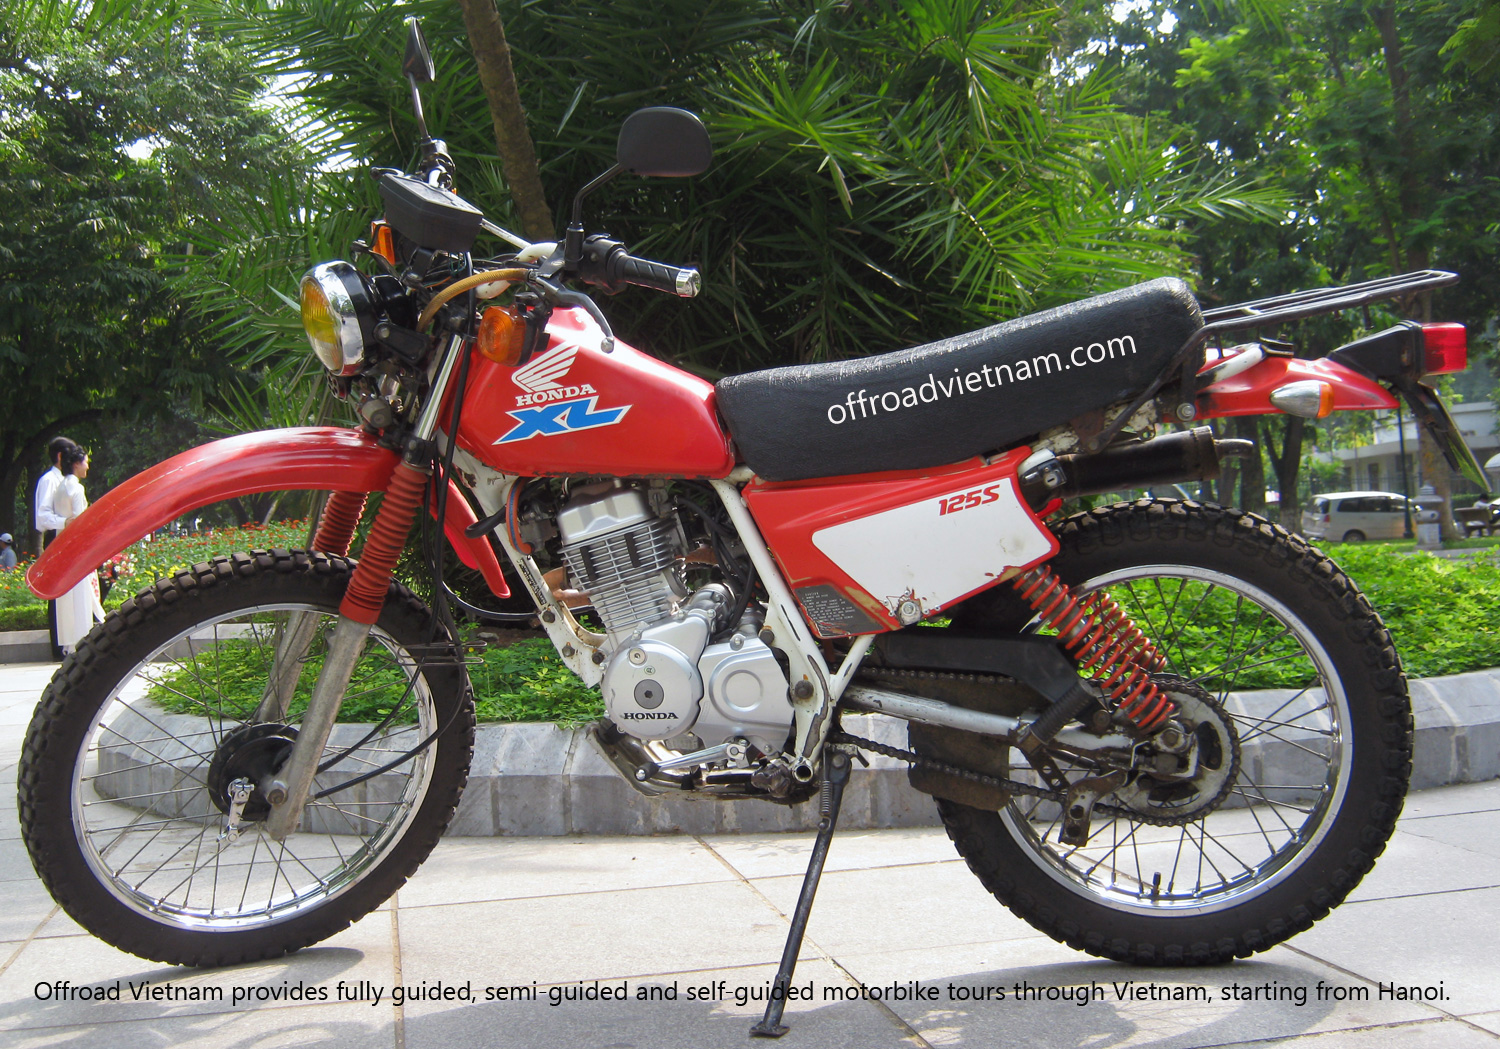 Offroad Vietnam Motorbike Sale - Honda XL125 Dirt Bike For Sale In Hanoi